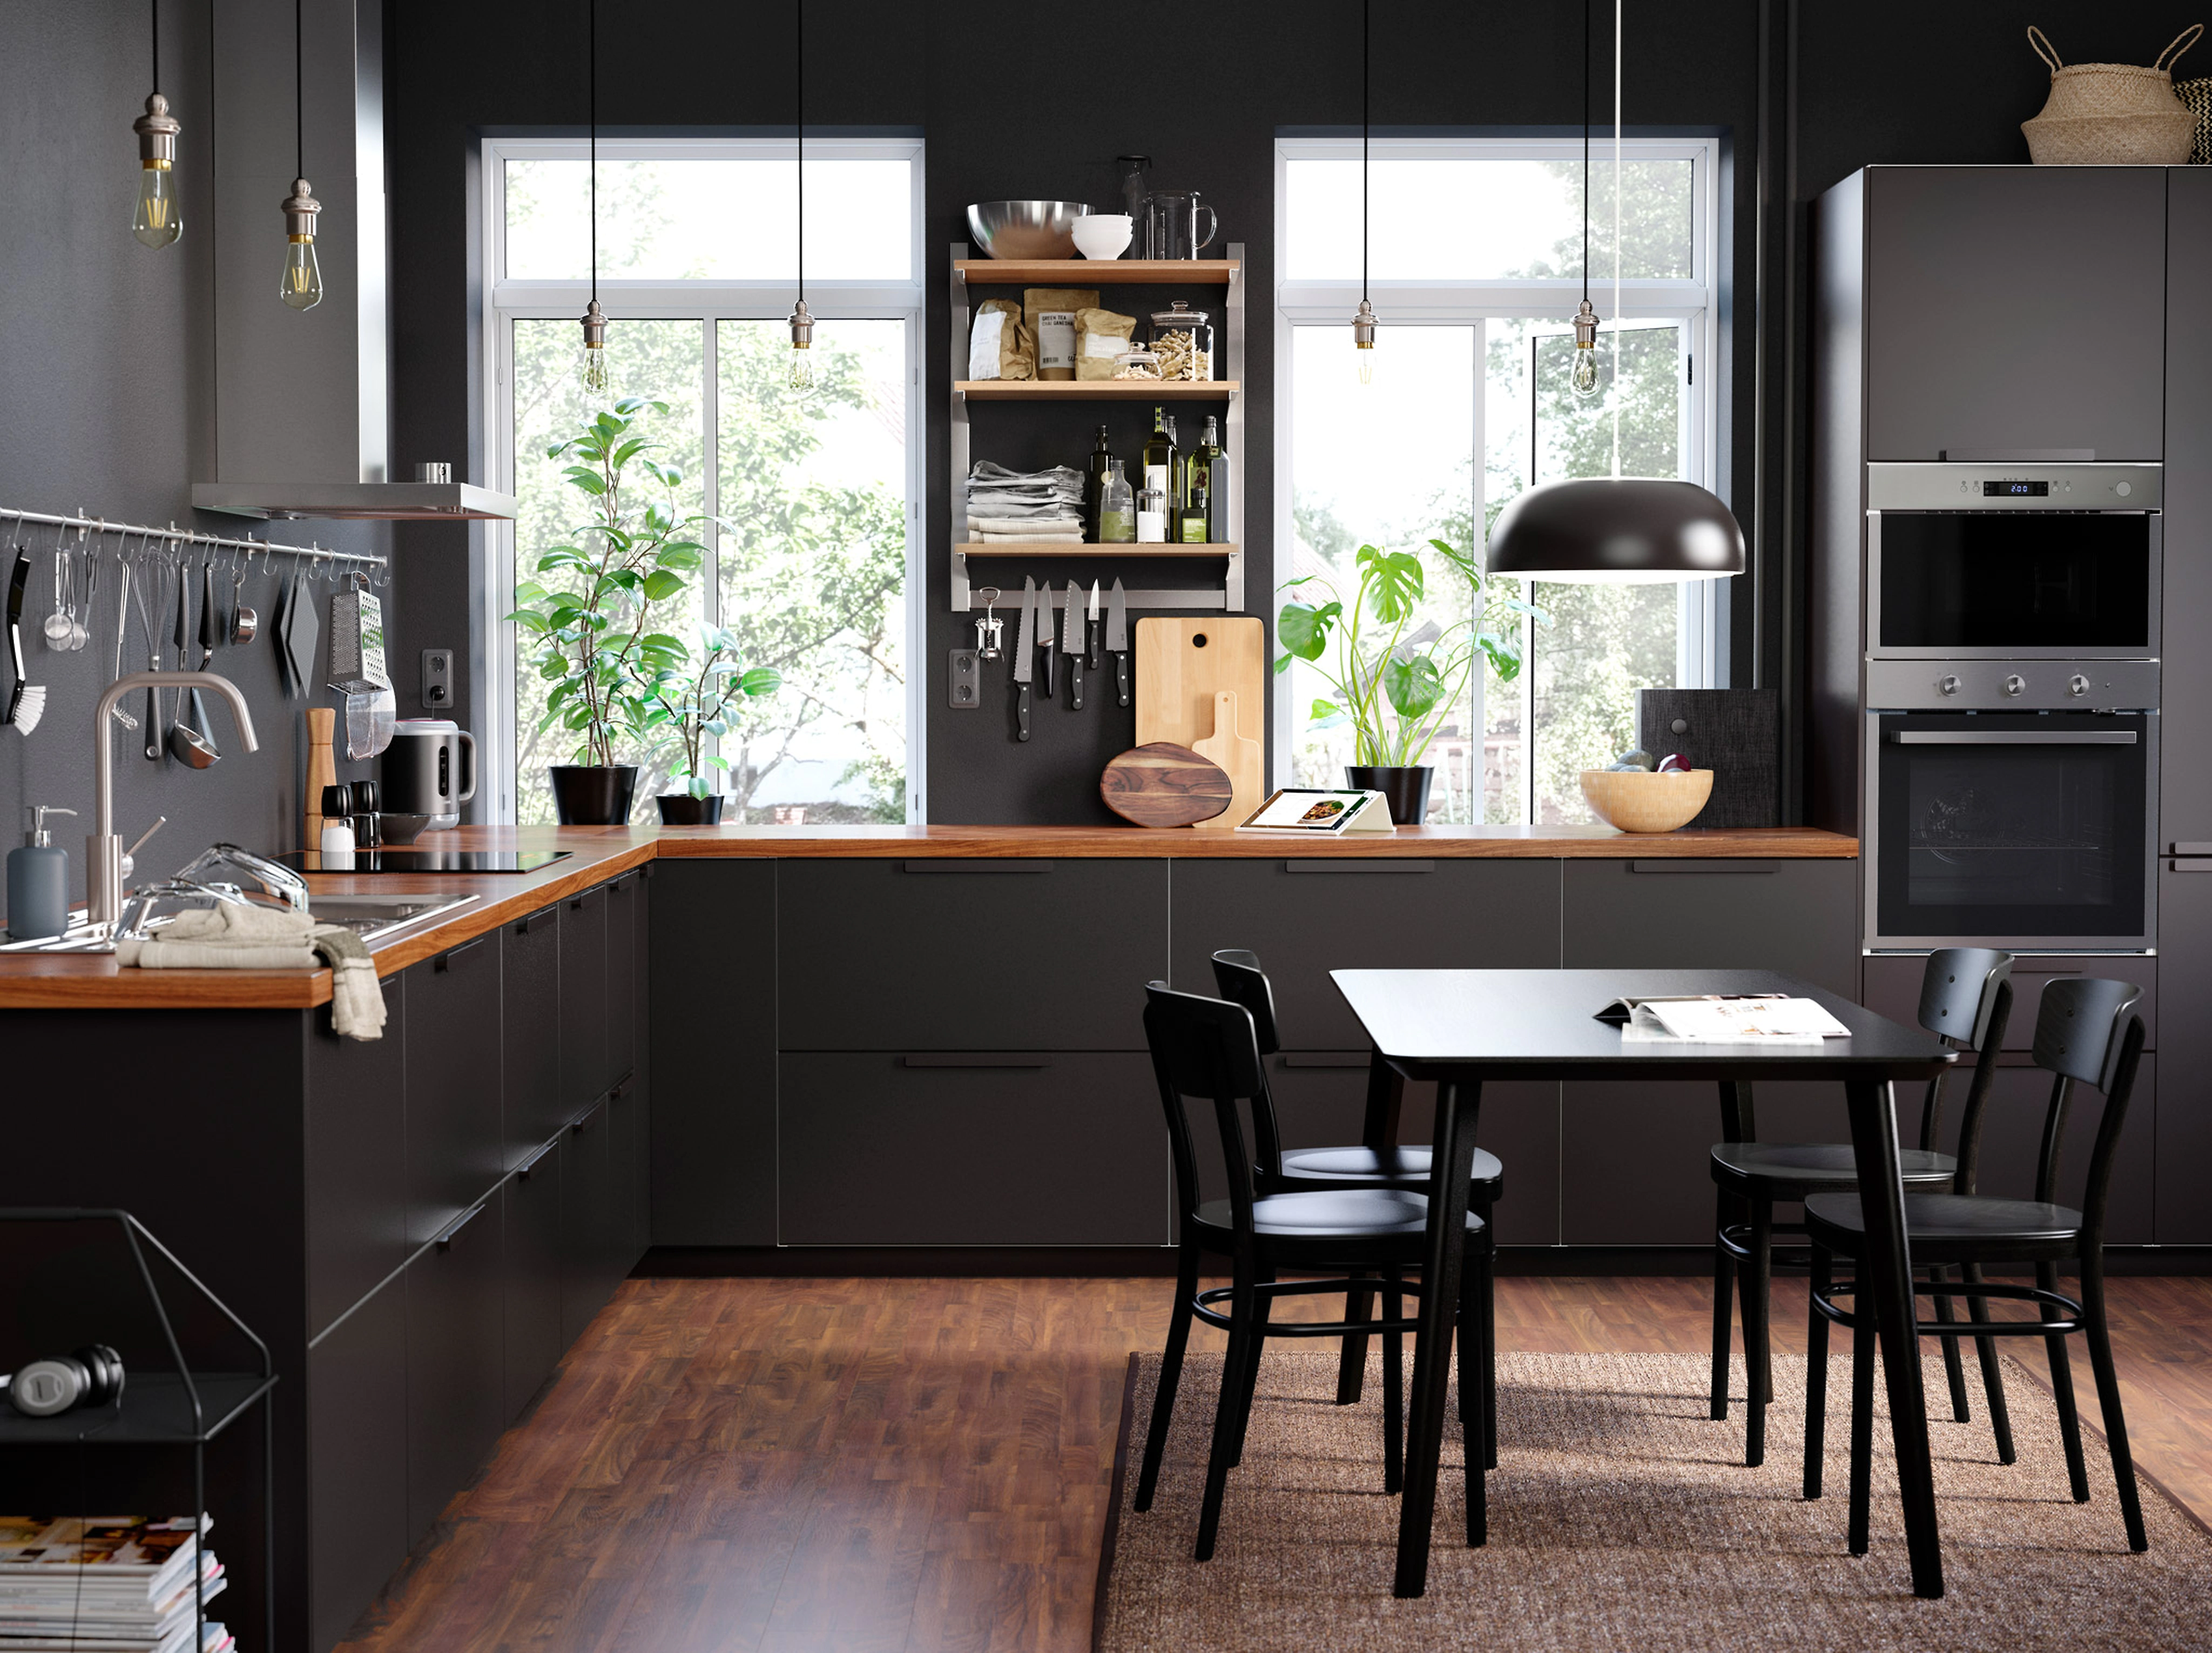 Ikea Kungsbacka kitchen. Matt black is